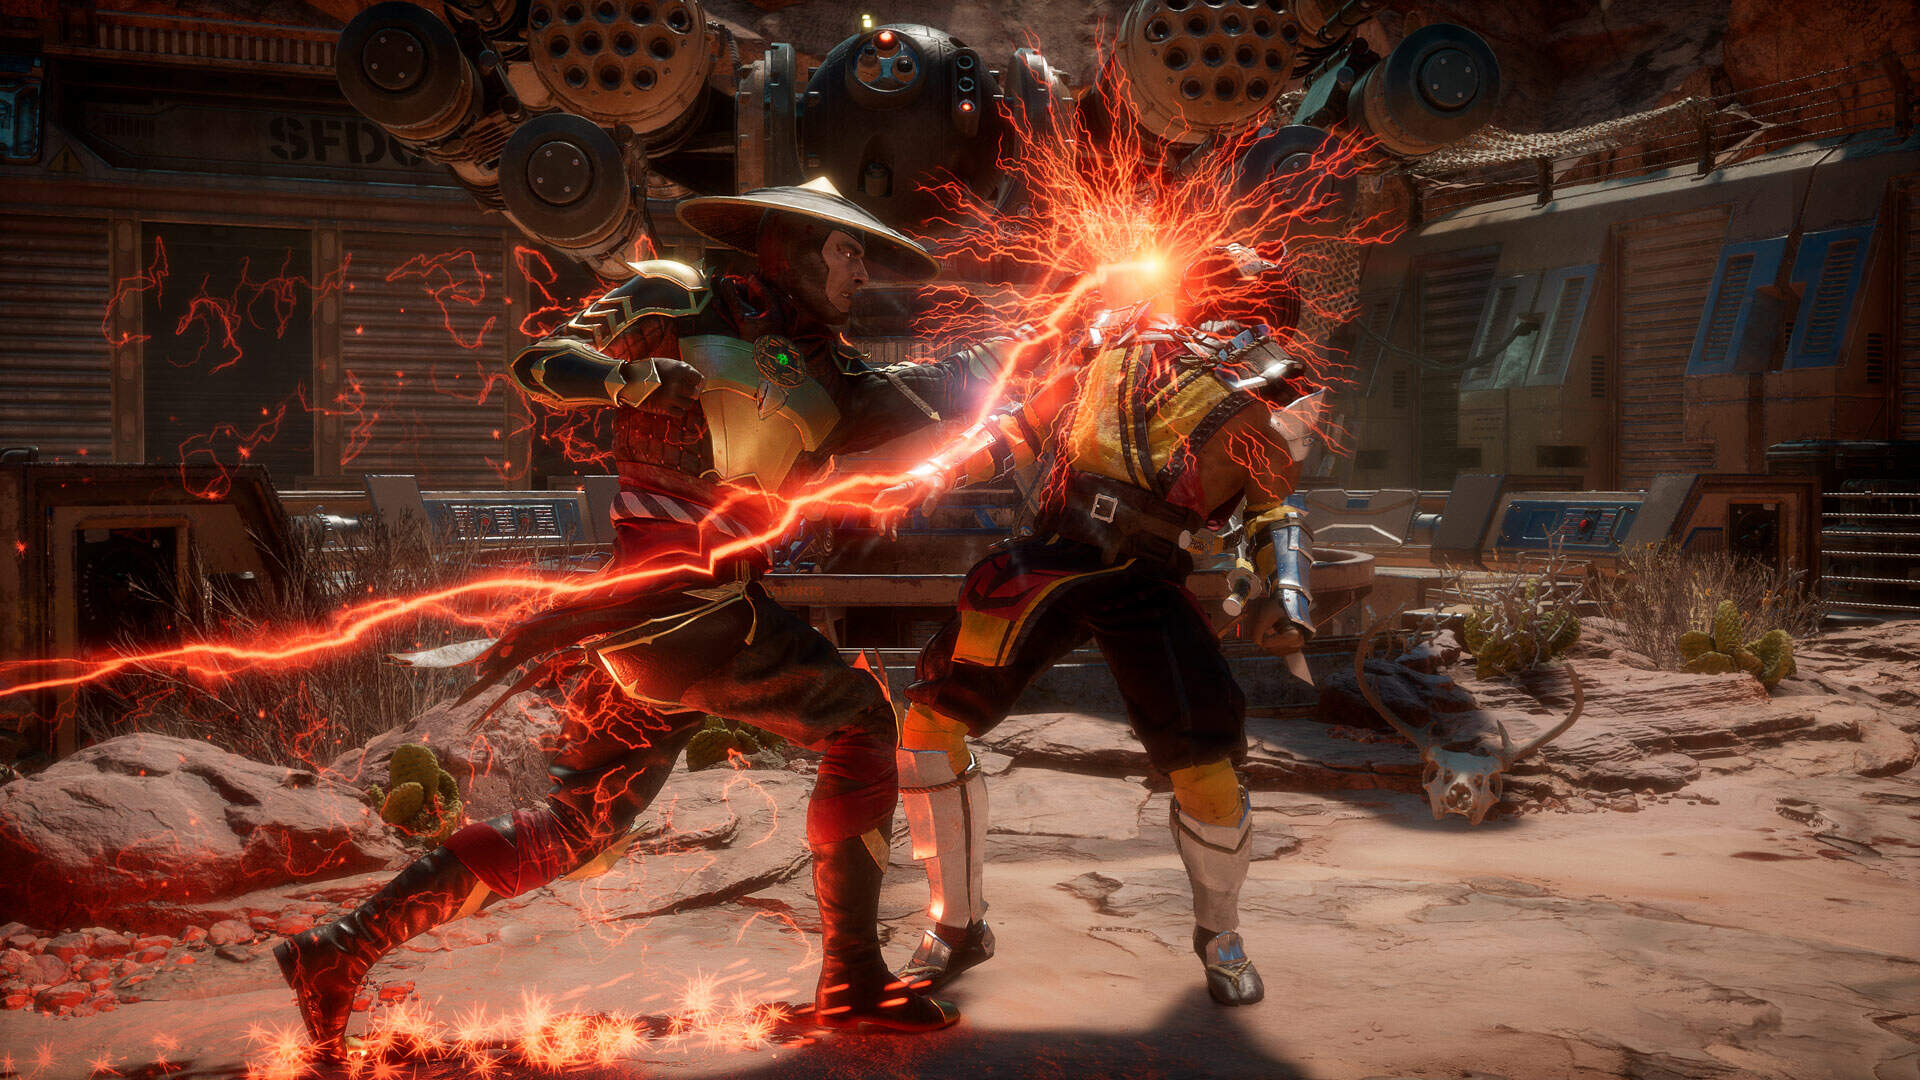 What You Need to Know About Mortal Kombat 11's Premium Shop, and How it Borrows From Fortnite [Update]